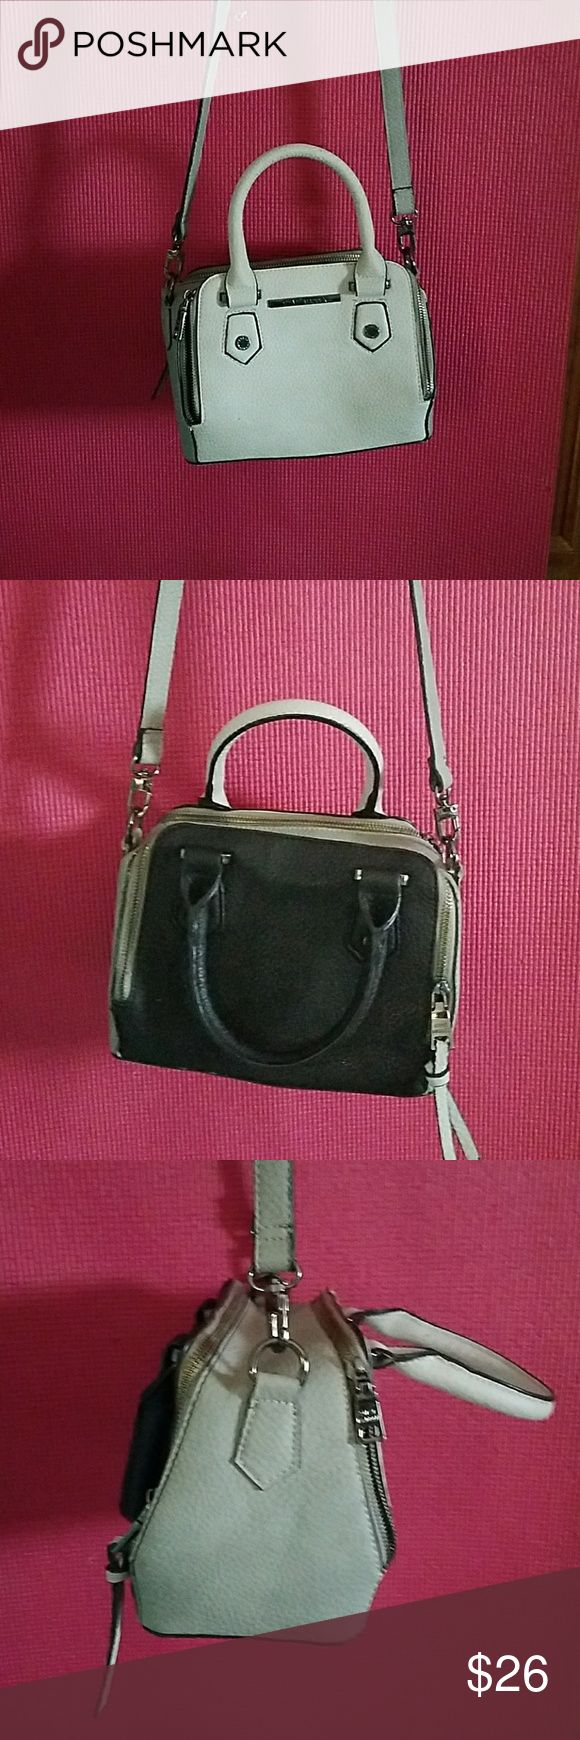 Steve Madden bag /Black &Grey shoulder bag. This two tone grey & black bag by Steve Madden is so adorable used a couple times.just a little to small come me but can fit quite a bit makeup brush, phone cash and cards small wallet Steve Madden Bags Shoulder Bags